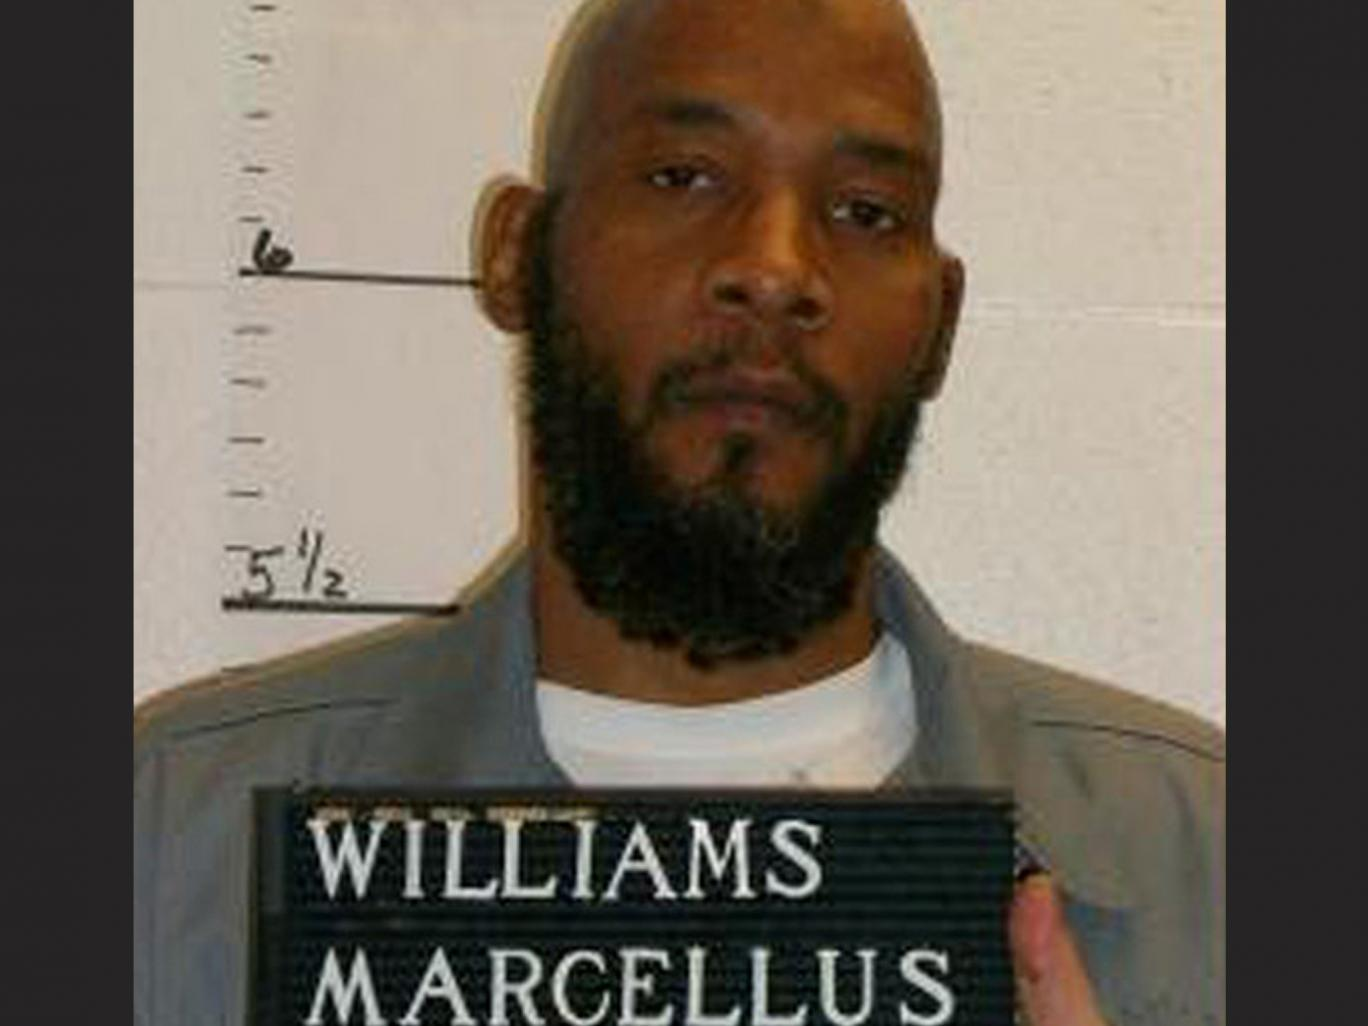 Marcellus Williams